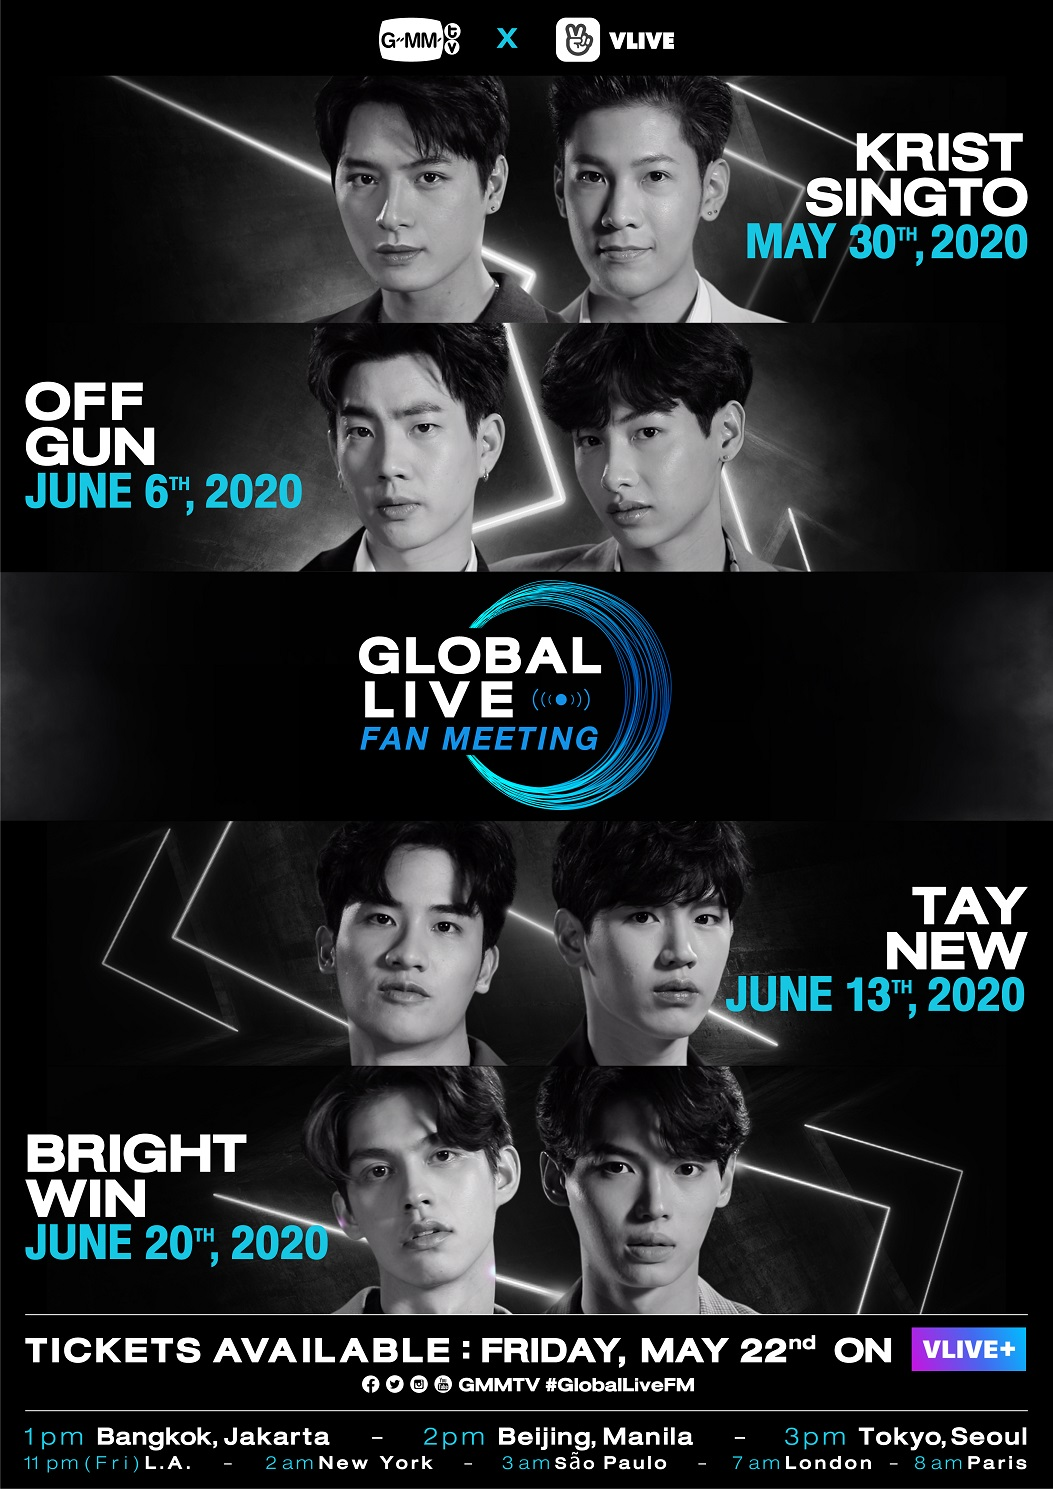 Global Live Fan Meeting